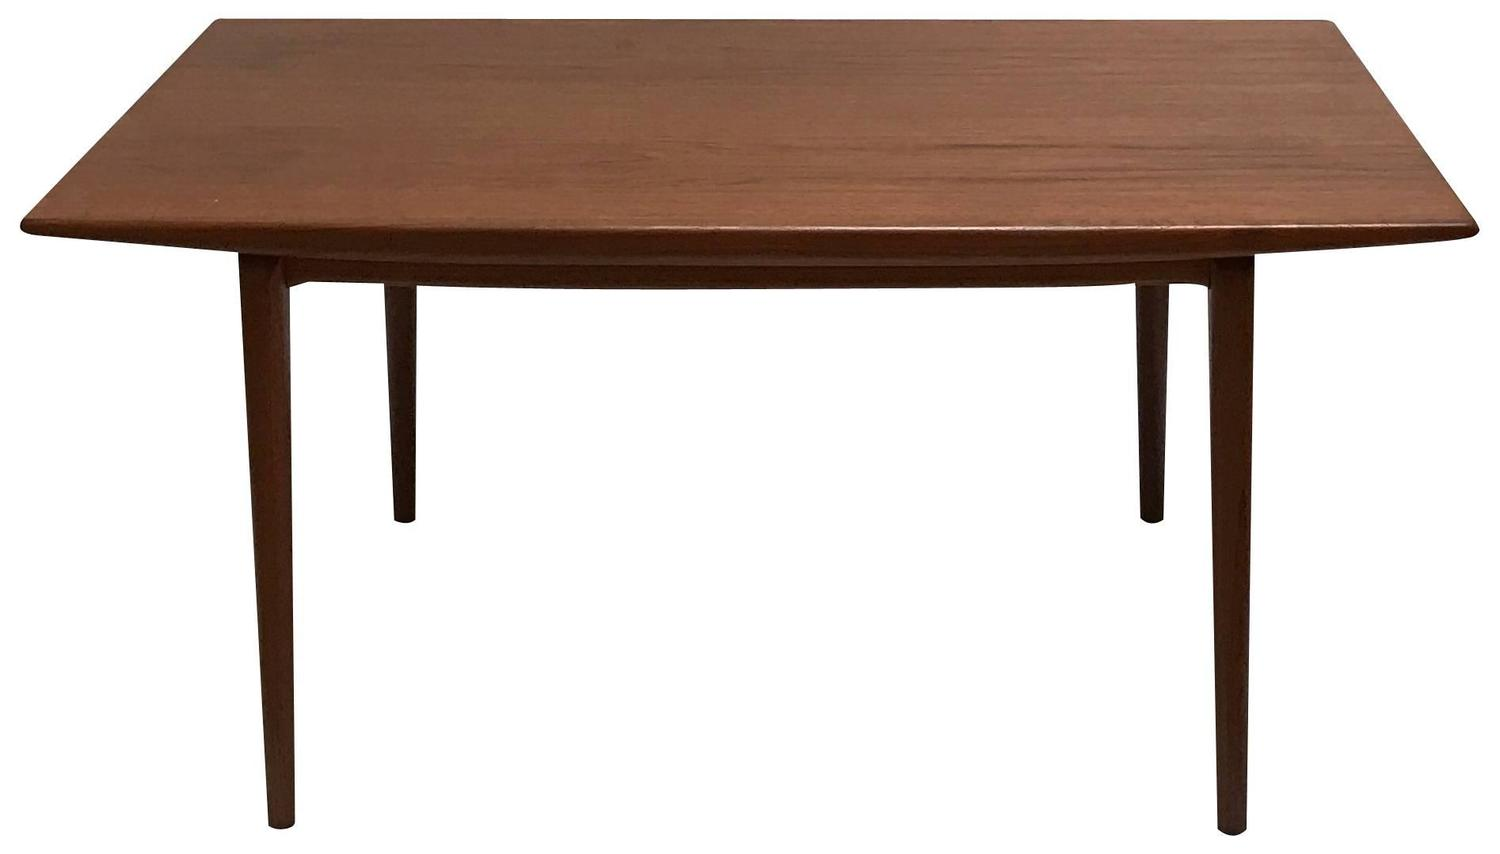 1959 danish modern teak dining table by erik christiansen for Most beautiful dining room tables